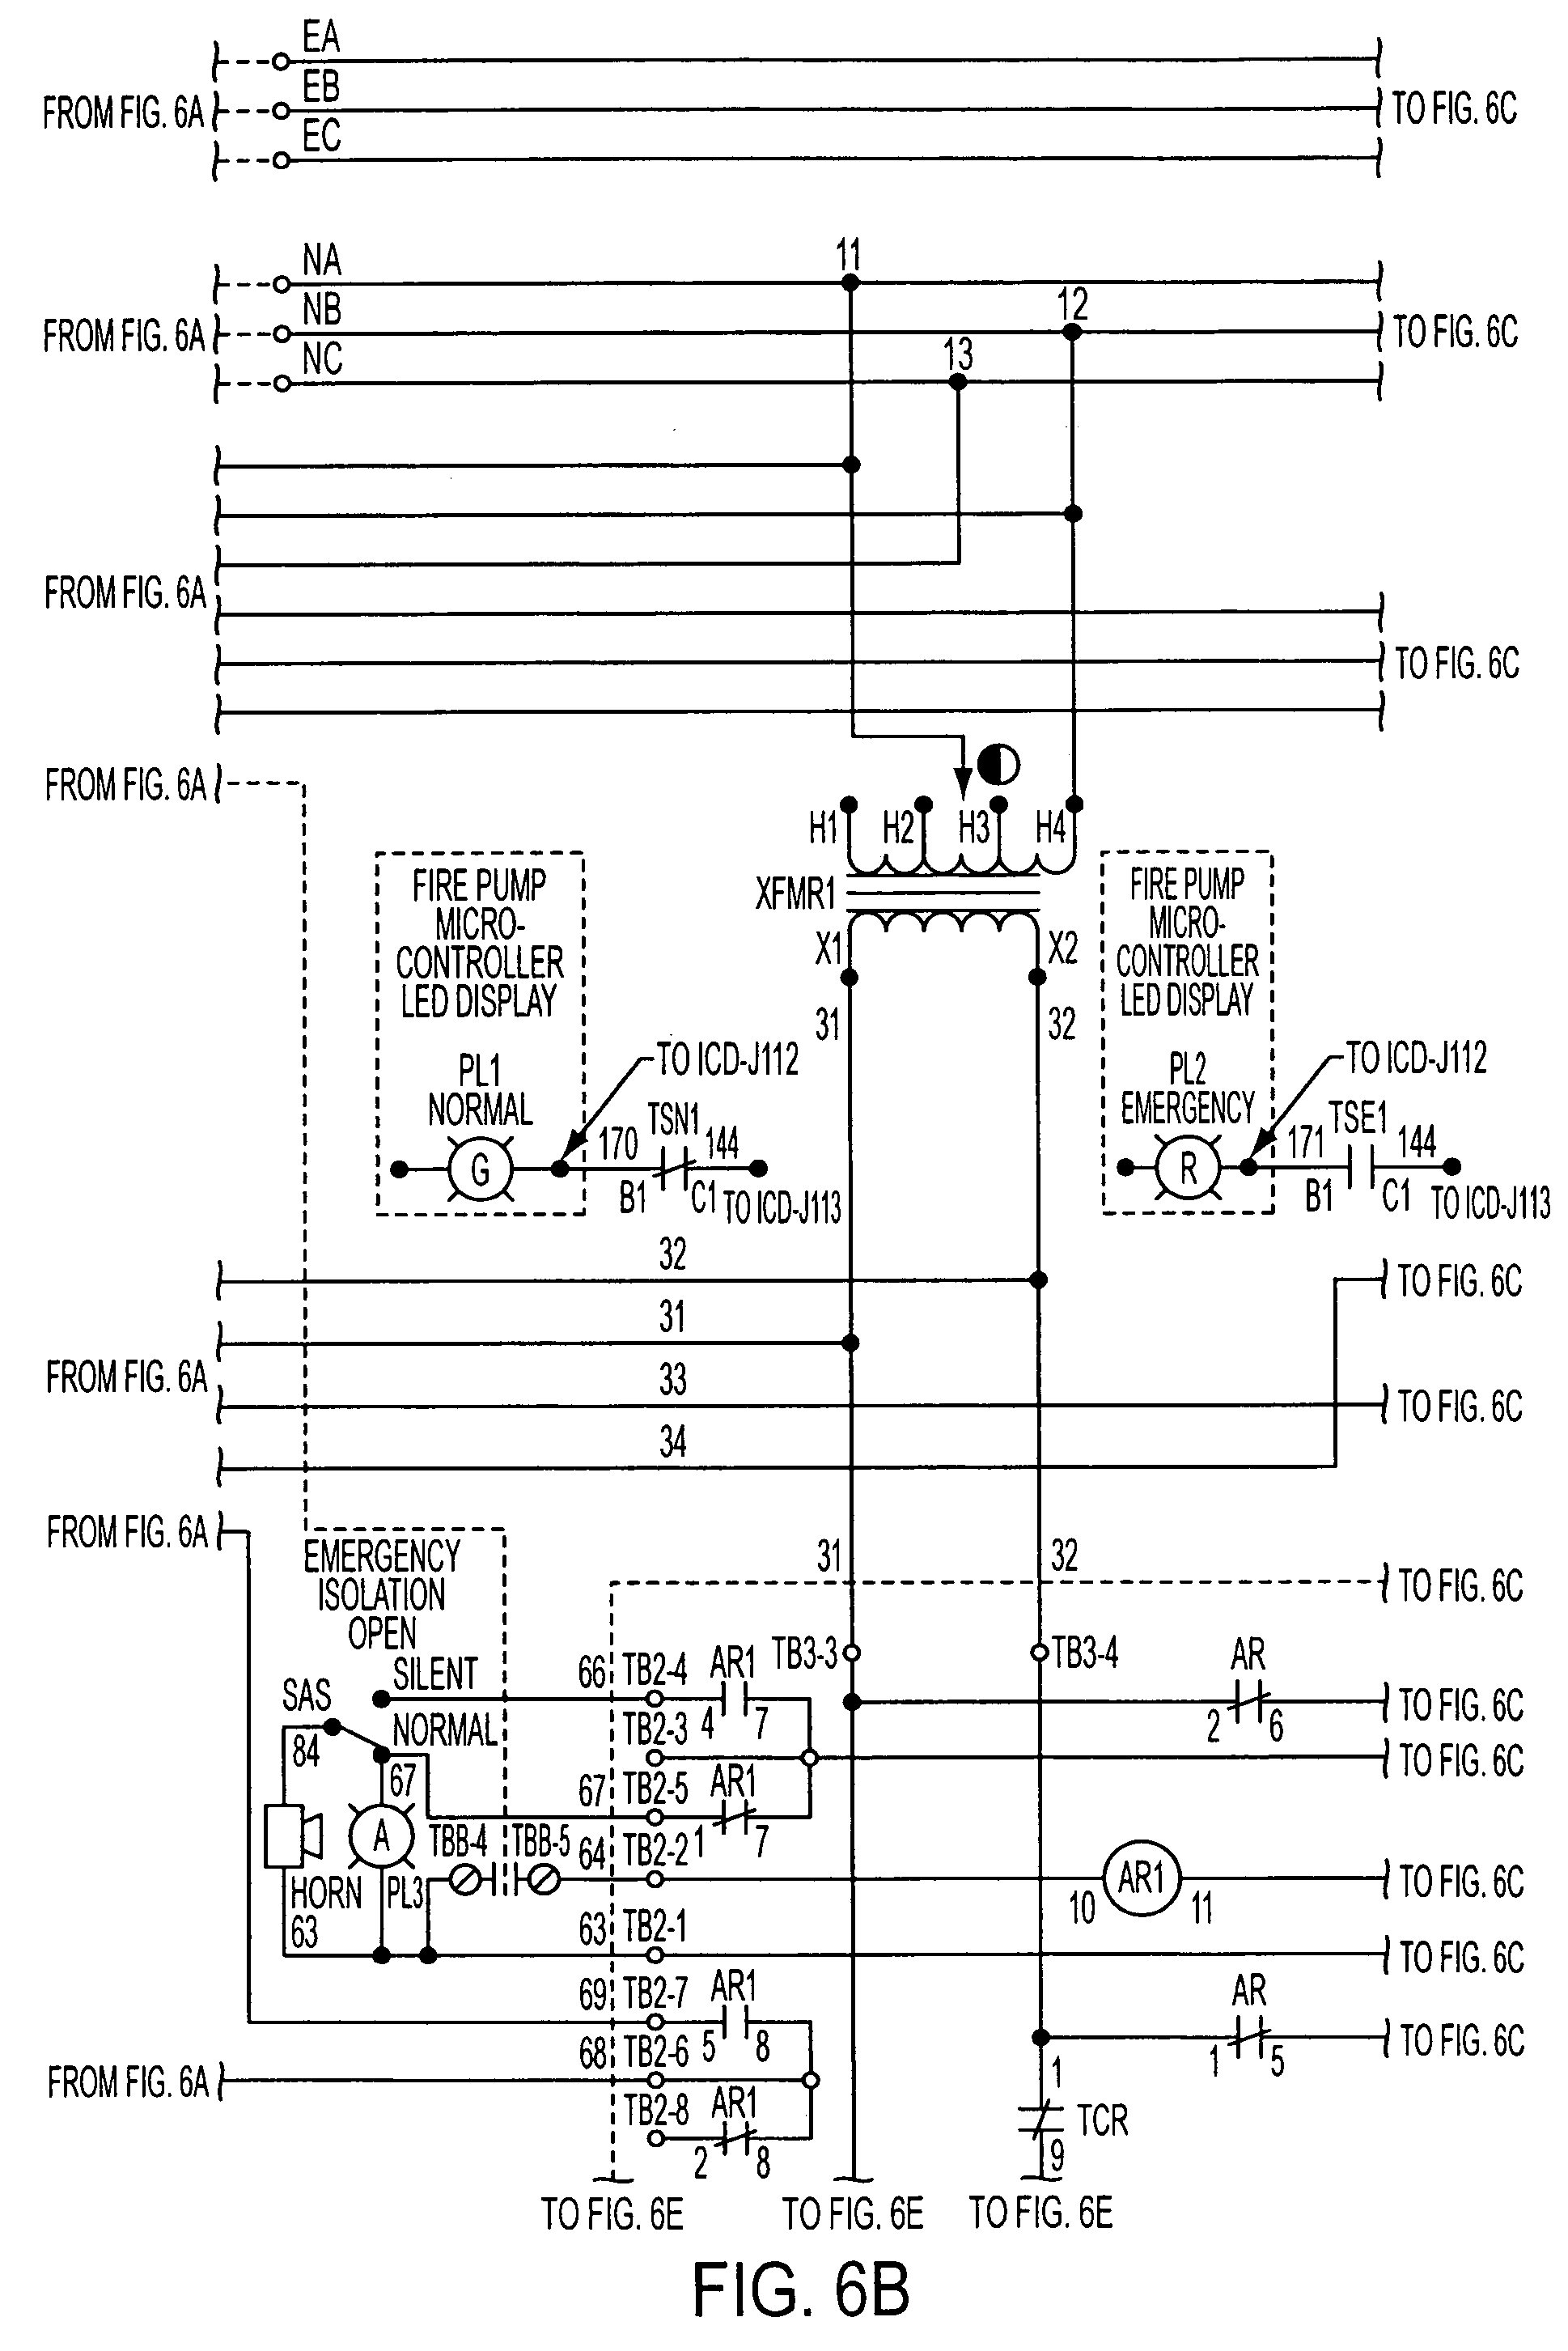 fire pump controller wiring diagram wiring diagram and schematic sel generator control panel wiring diagram be24